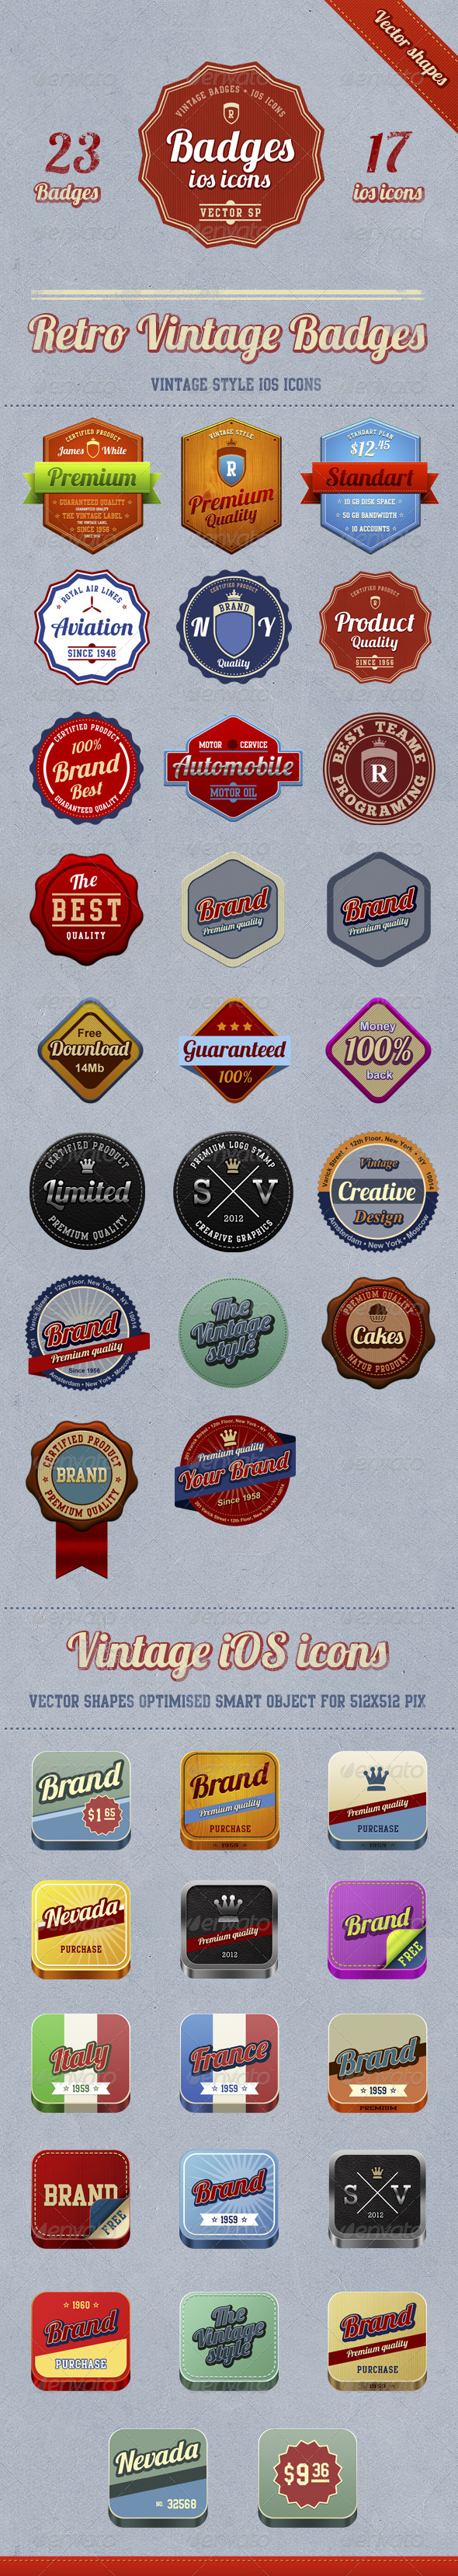 GraphicRiver 23 badges & 17 vintage iOS icons 2518399